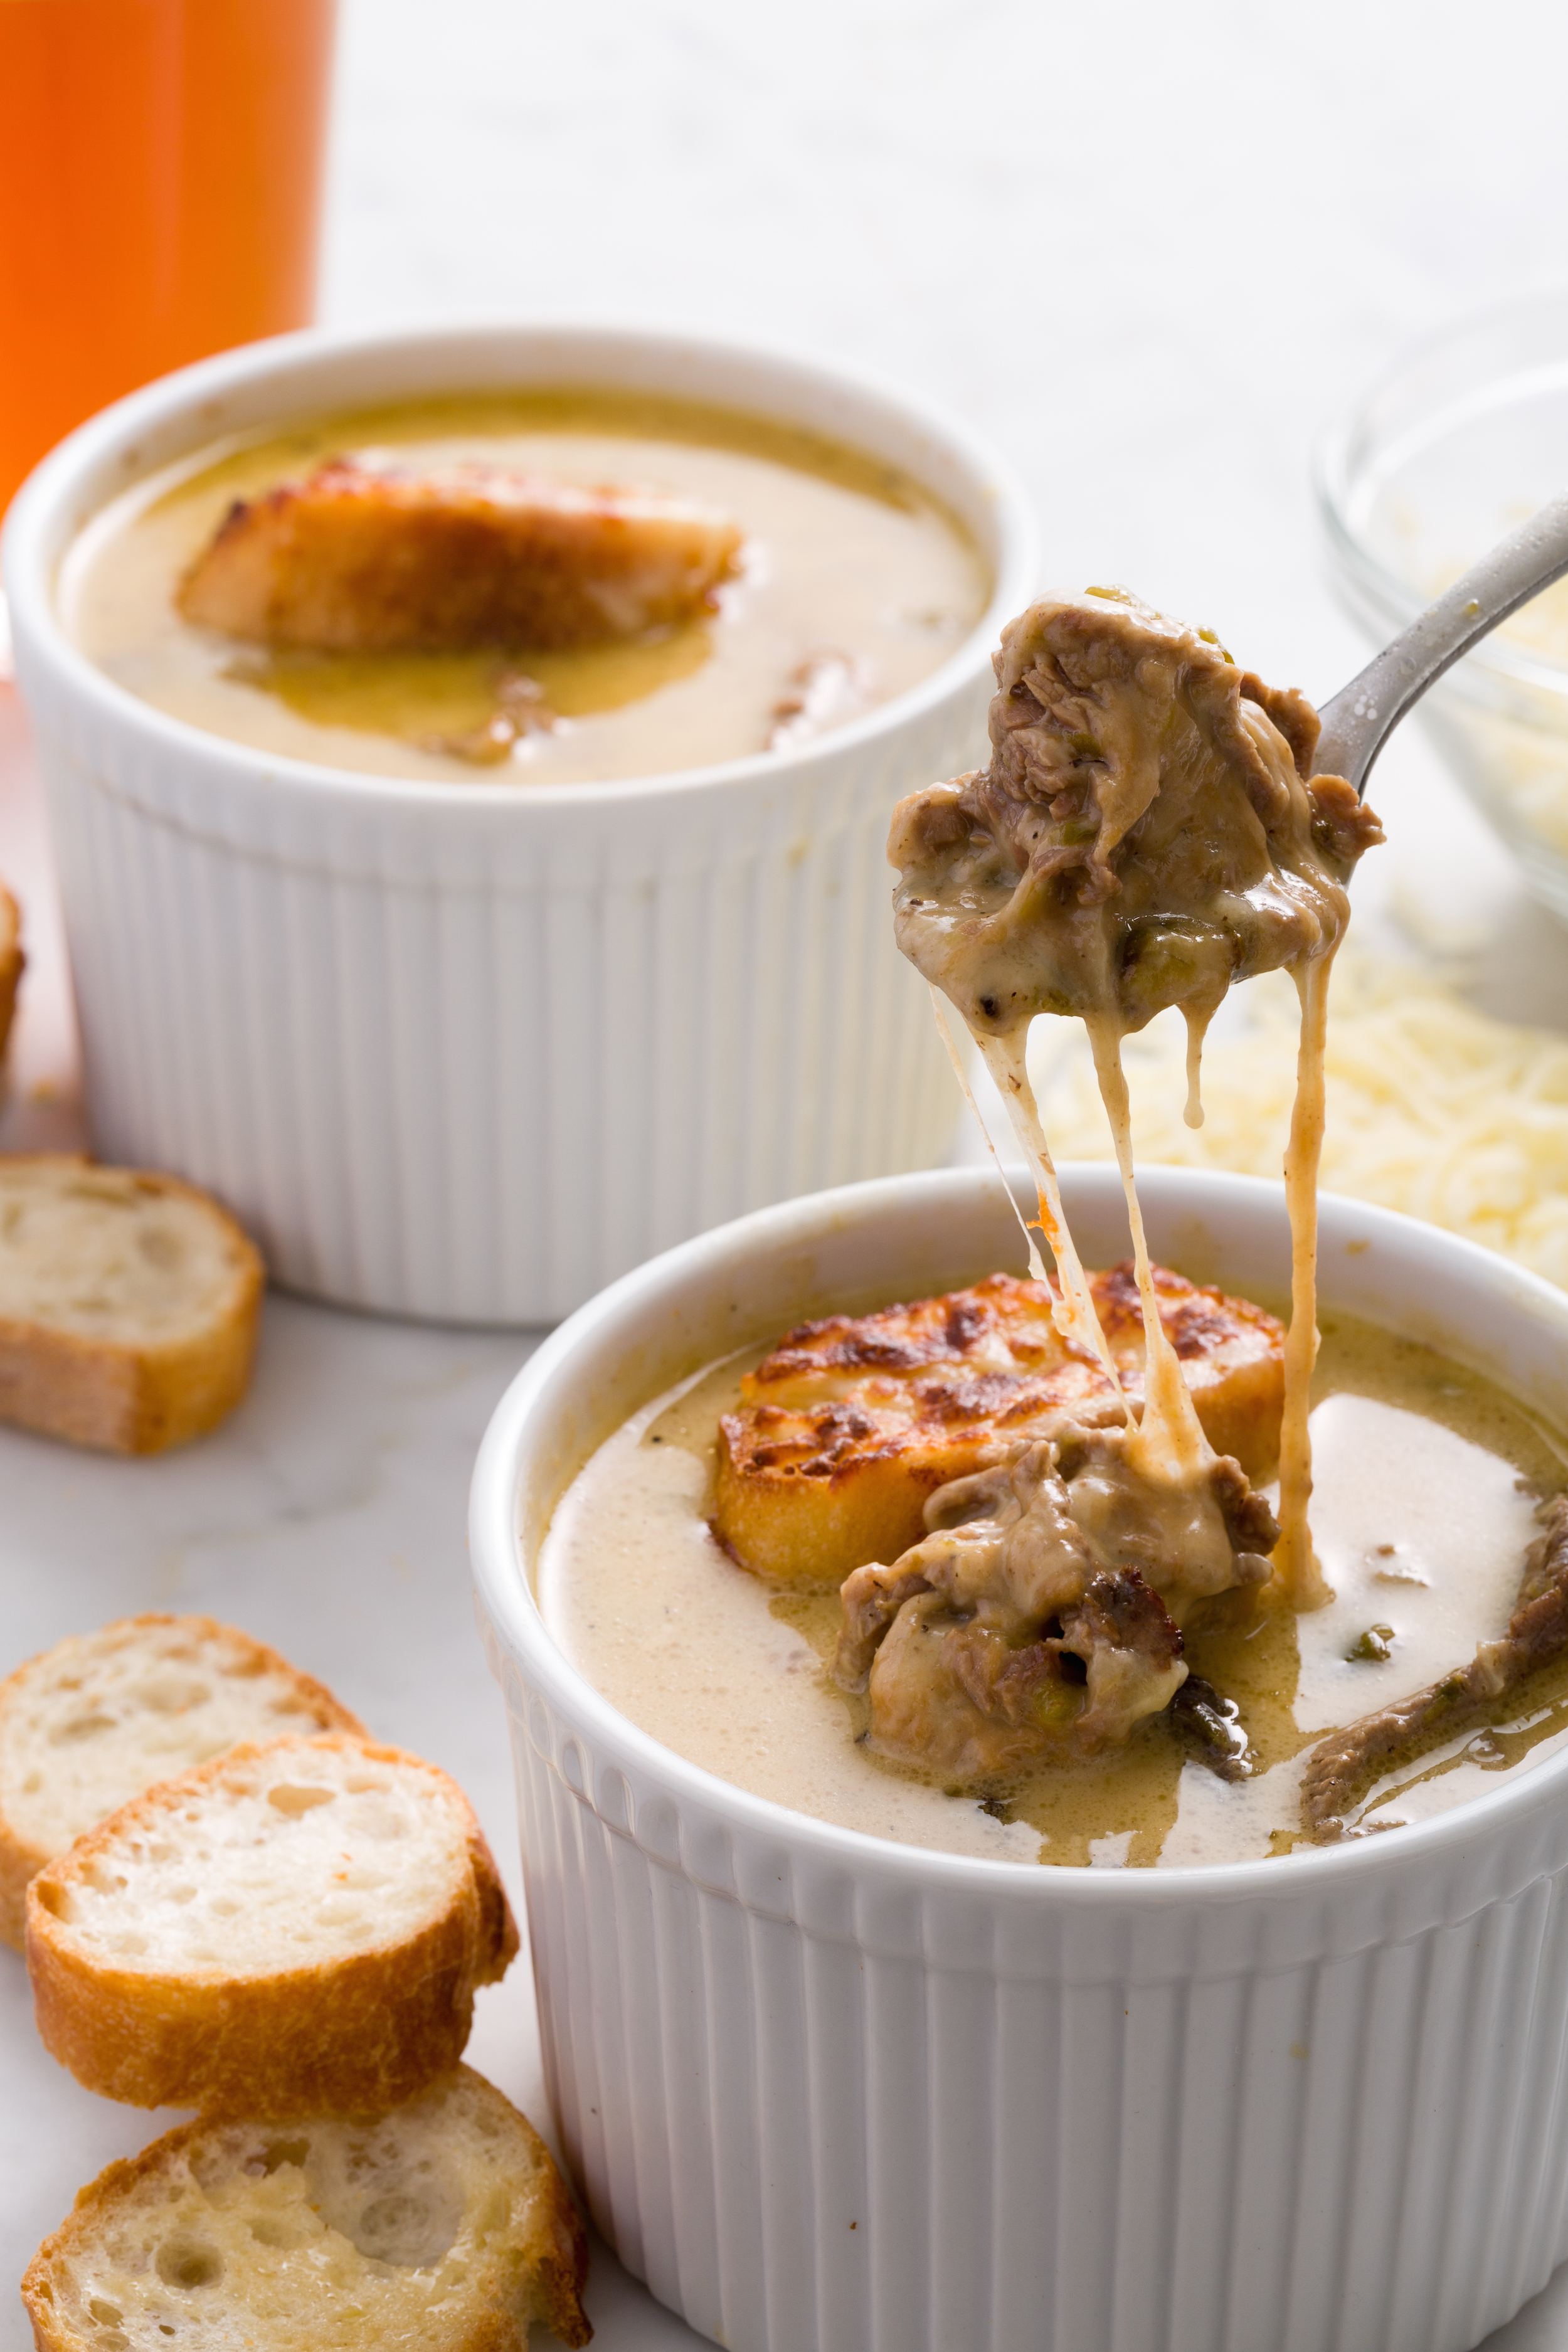 ... Philly Cheesesteak Soup Recipe - How to Make Philly Cheesesteak Soup